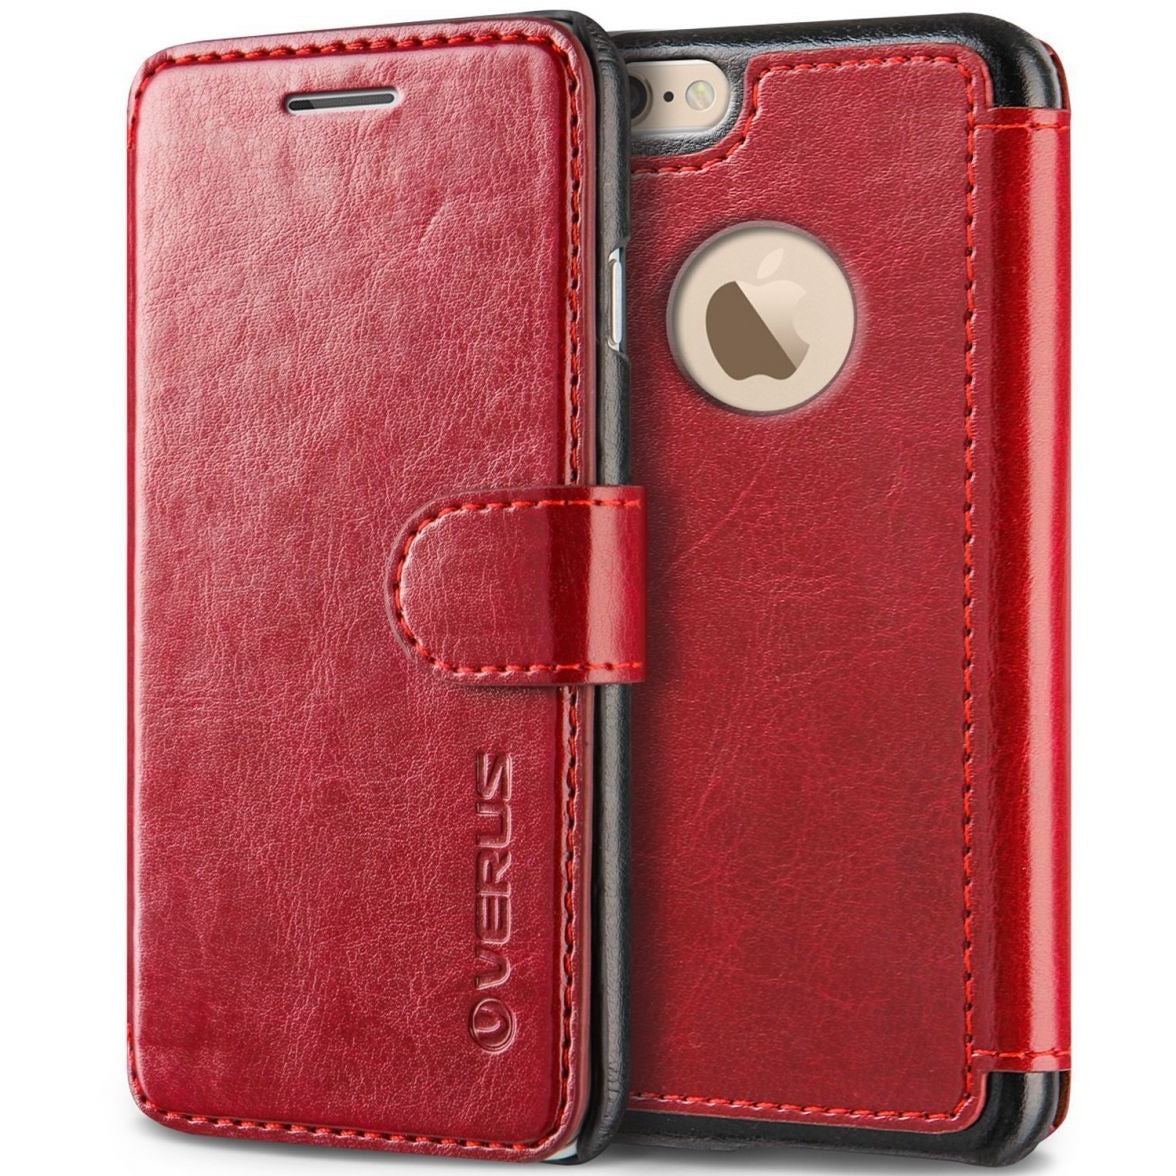 Verus iPhone 6S Mobile cover, Verus Layered Dandy Red Card Slot Flip Slim Fit